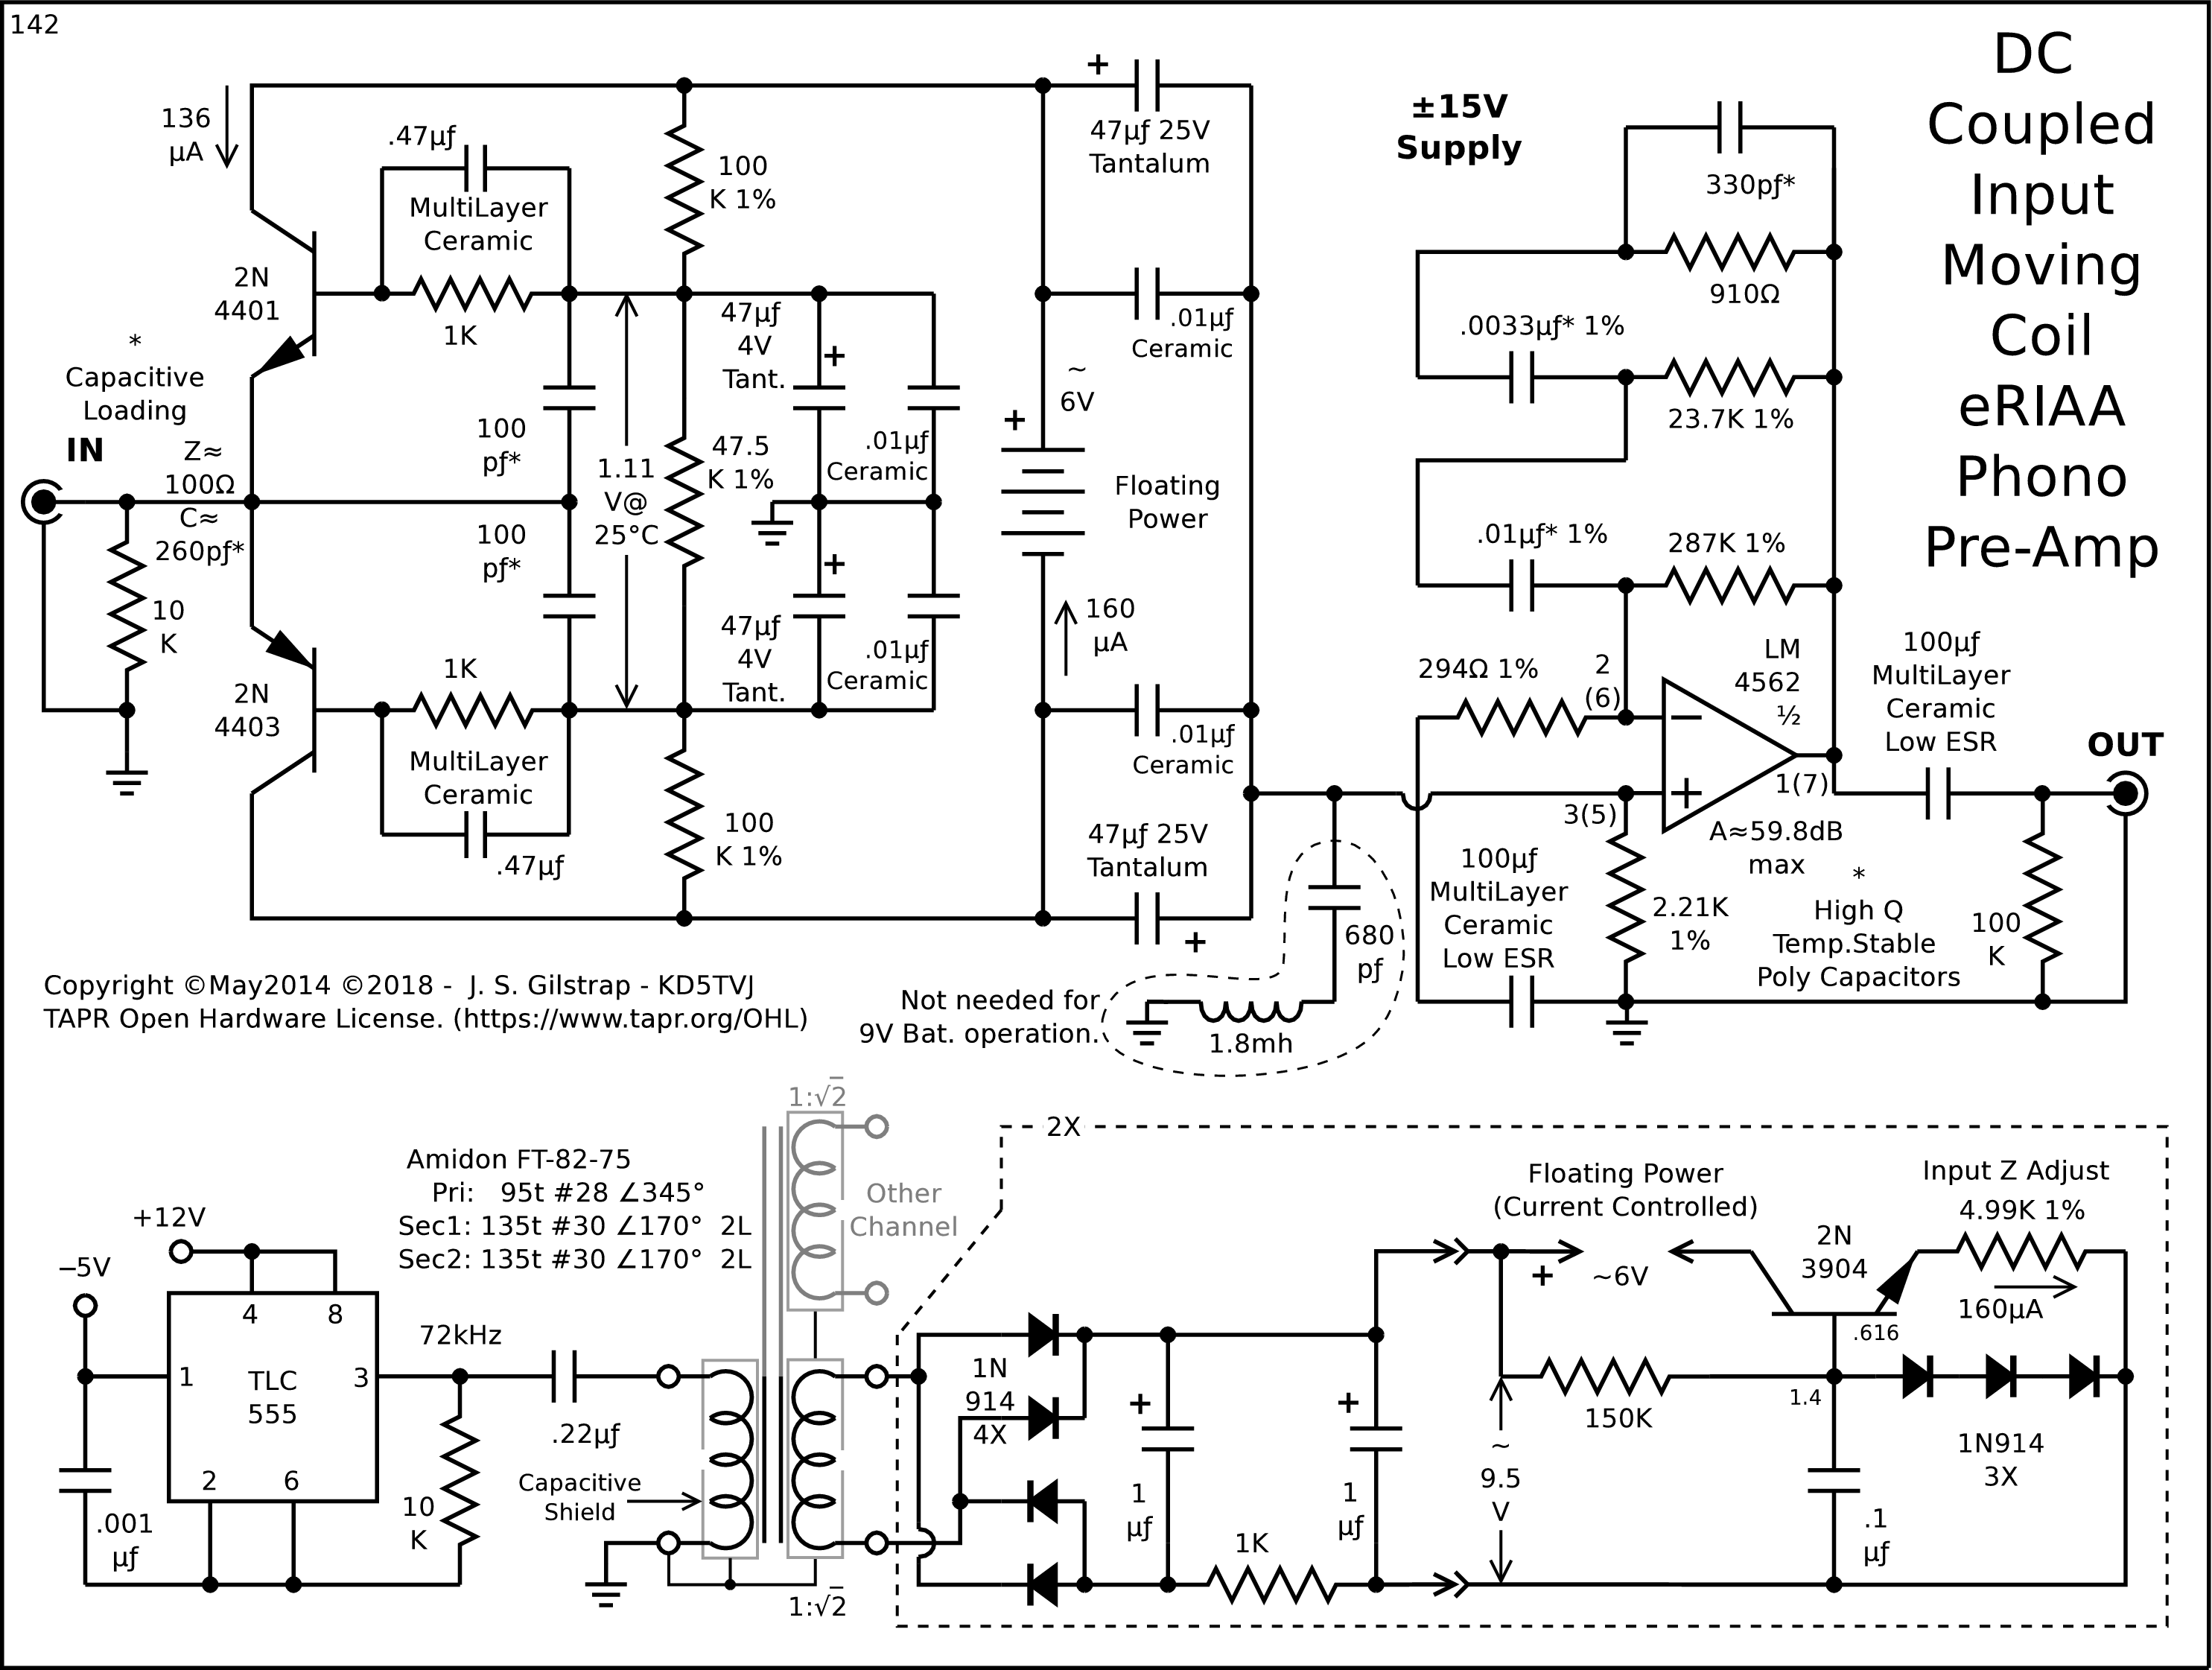 High Performance Phono Preamps Simple Audio Preamplifier Circuit Using Single Transistor 2n3904 In The 3 Previous Circuits Power Supplies For Head Amps Could Be Replaced With A 9v Battery Each Channel Extra Low Noise Operation